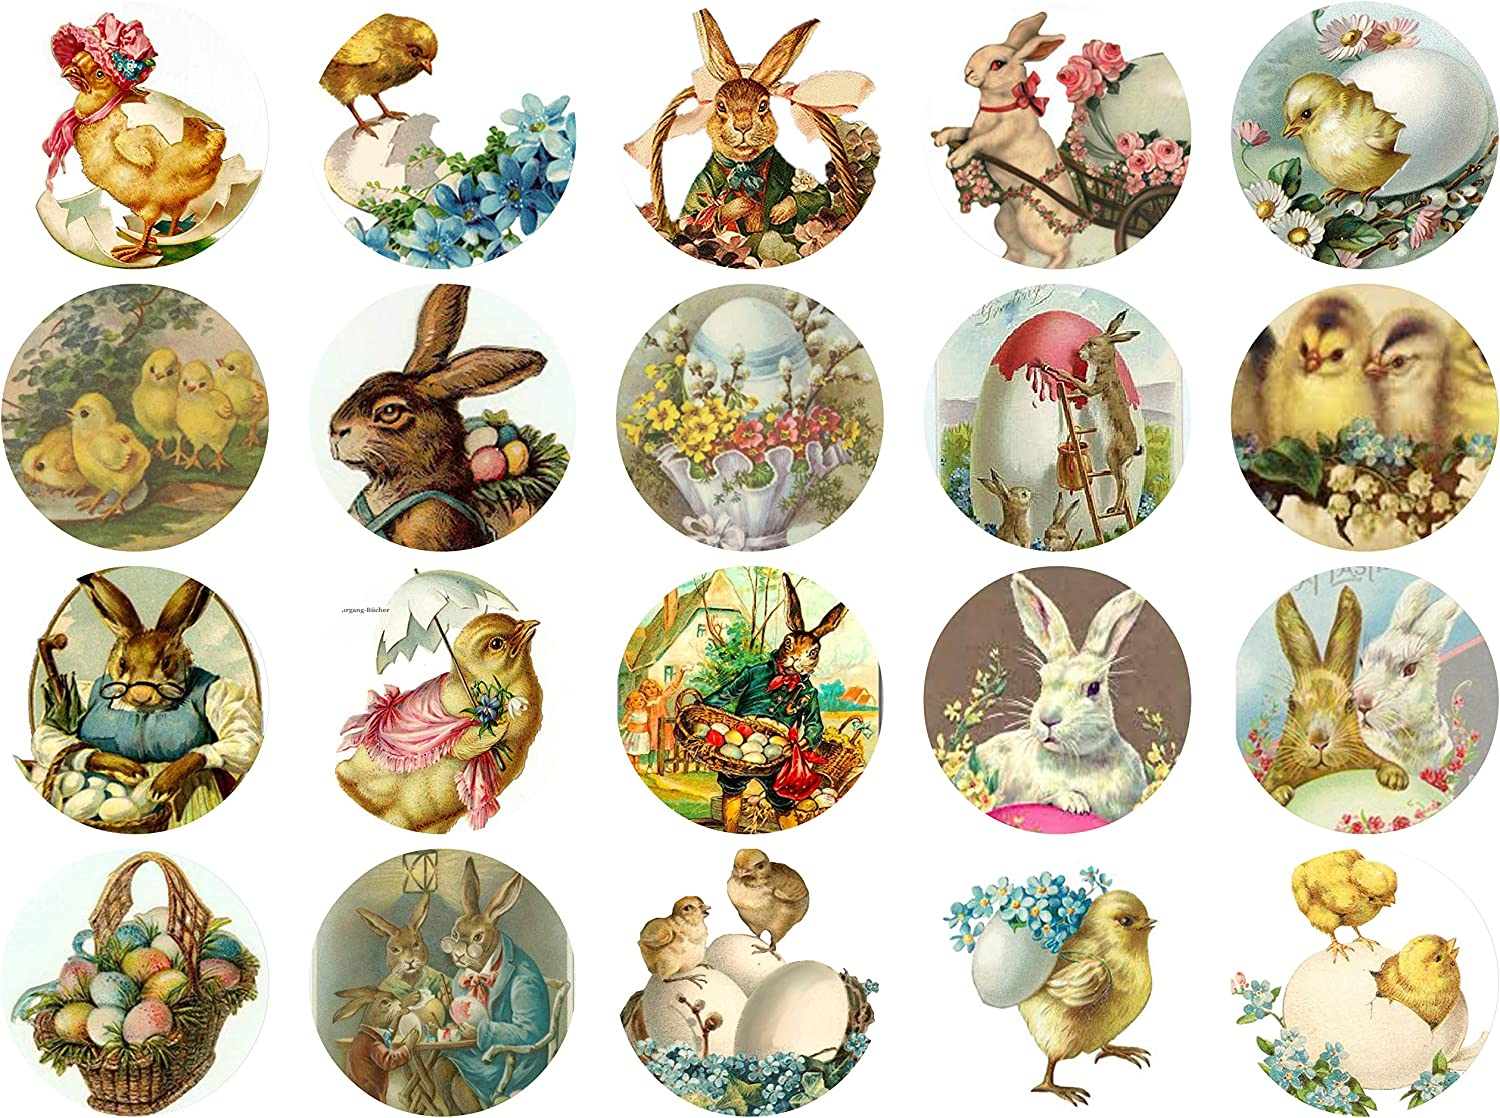 Scrapbooking Vintage Victorian Easter Circles 1.5 Collage Sheet # 102 for Art Altered Art